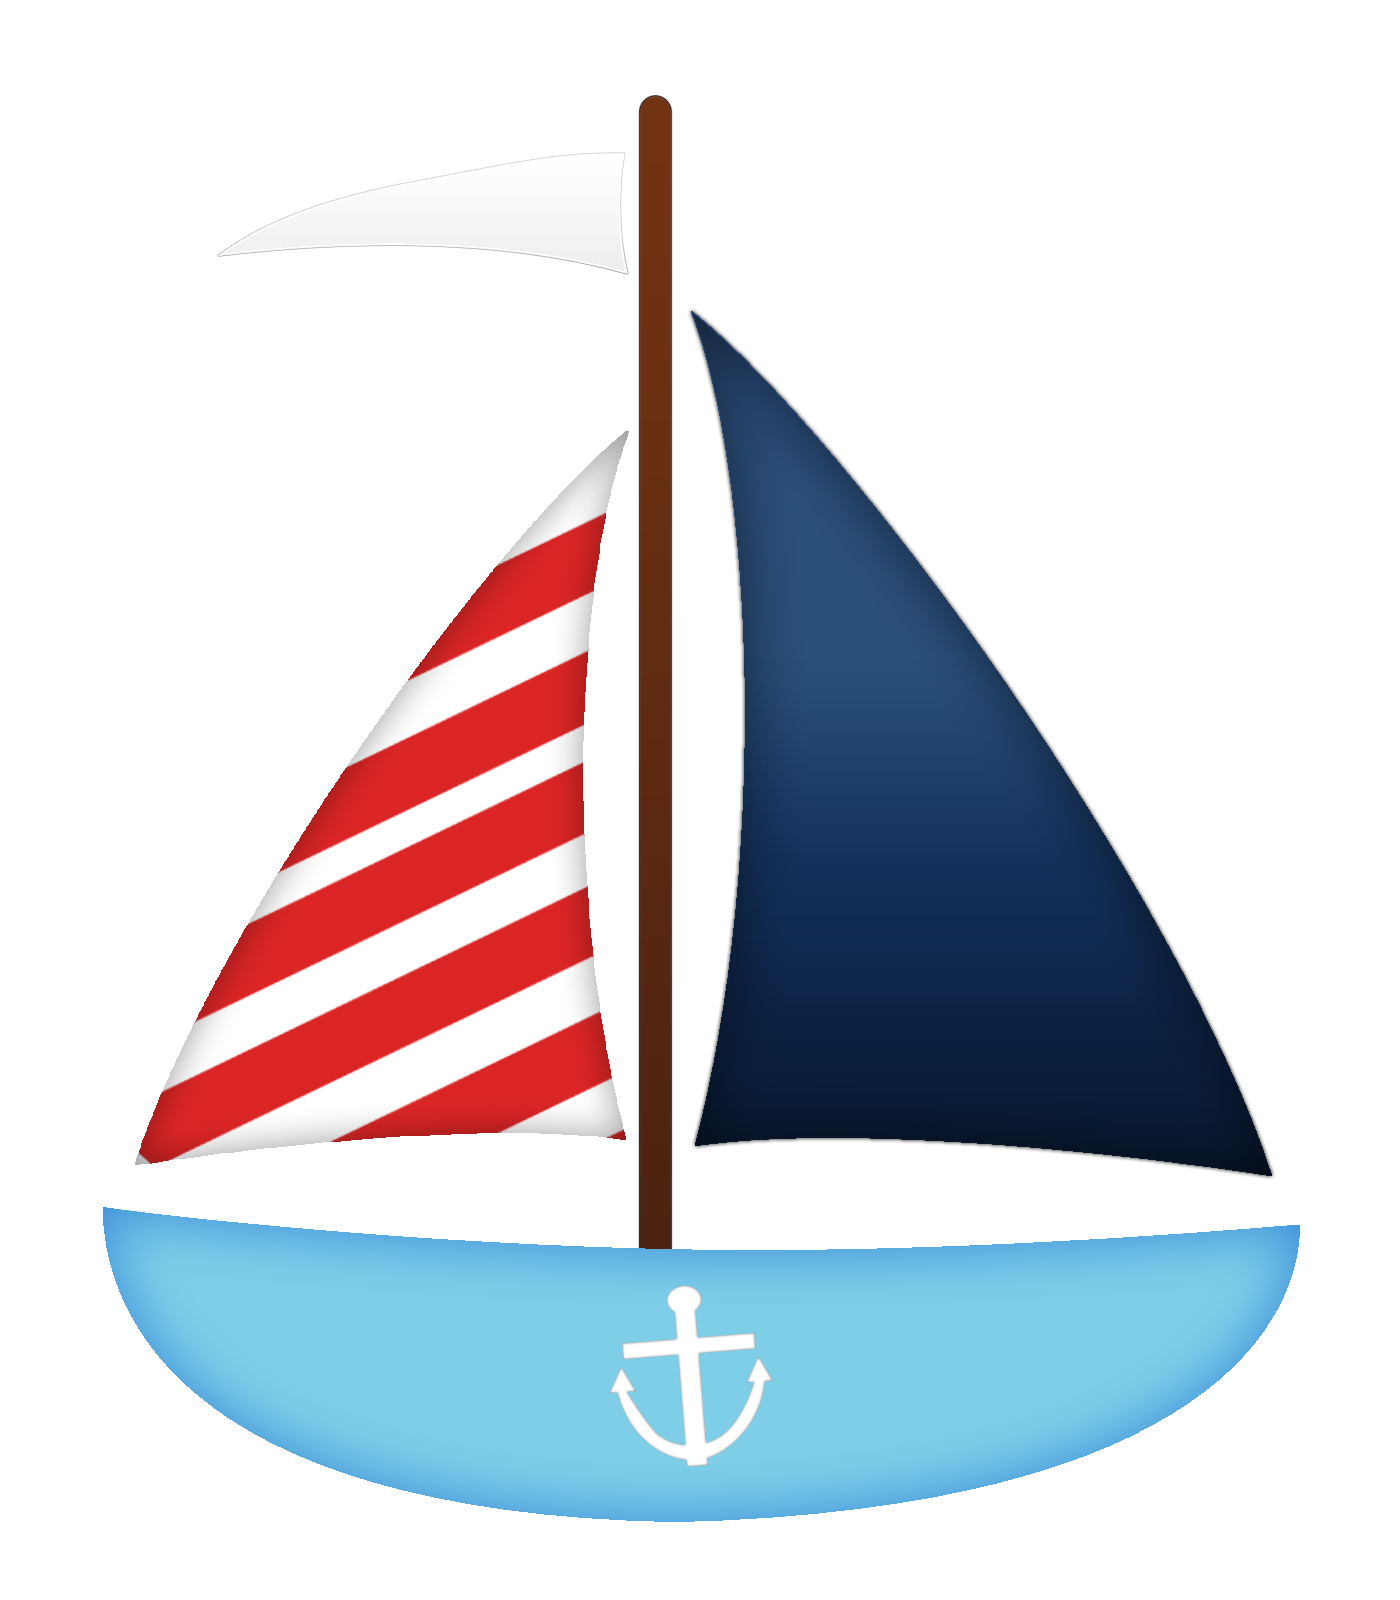 picture royalty free Banners transparent nautical. Sail boat clipart pinterest